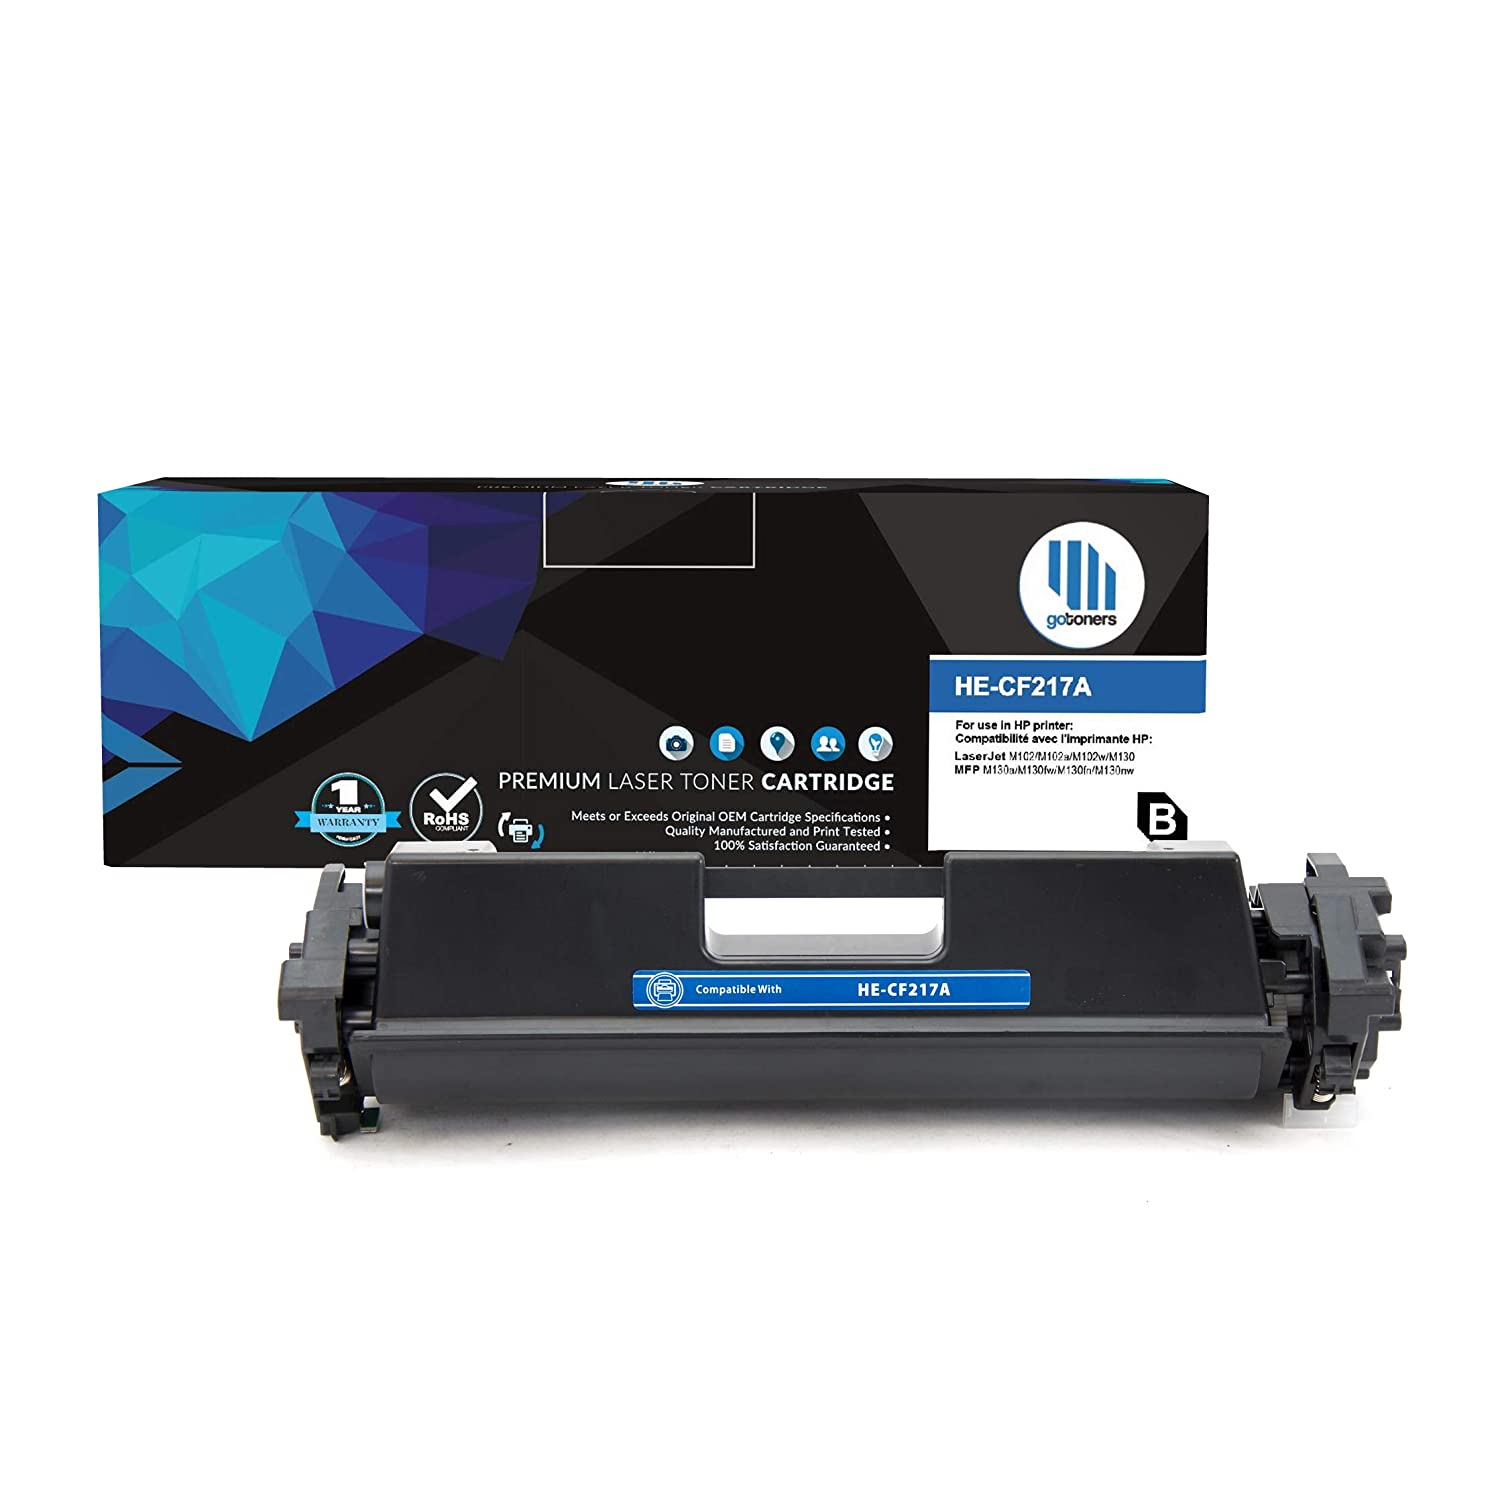 Gotoners™ Compatible Toner Cartridges CF217A/HP 17A Replacement Blcak High Page Yield HP Laserjet Pro M102a M102w MFP M130a M130fw M130nw Image Printer (2 Pack)